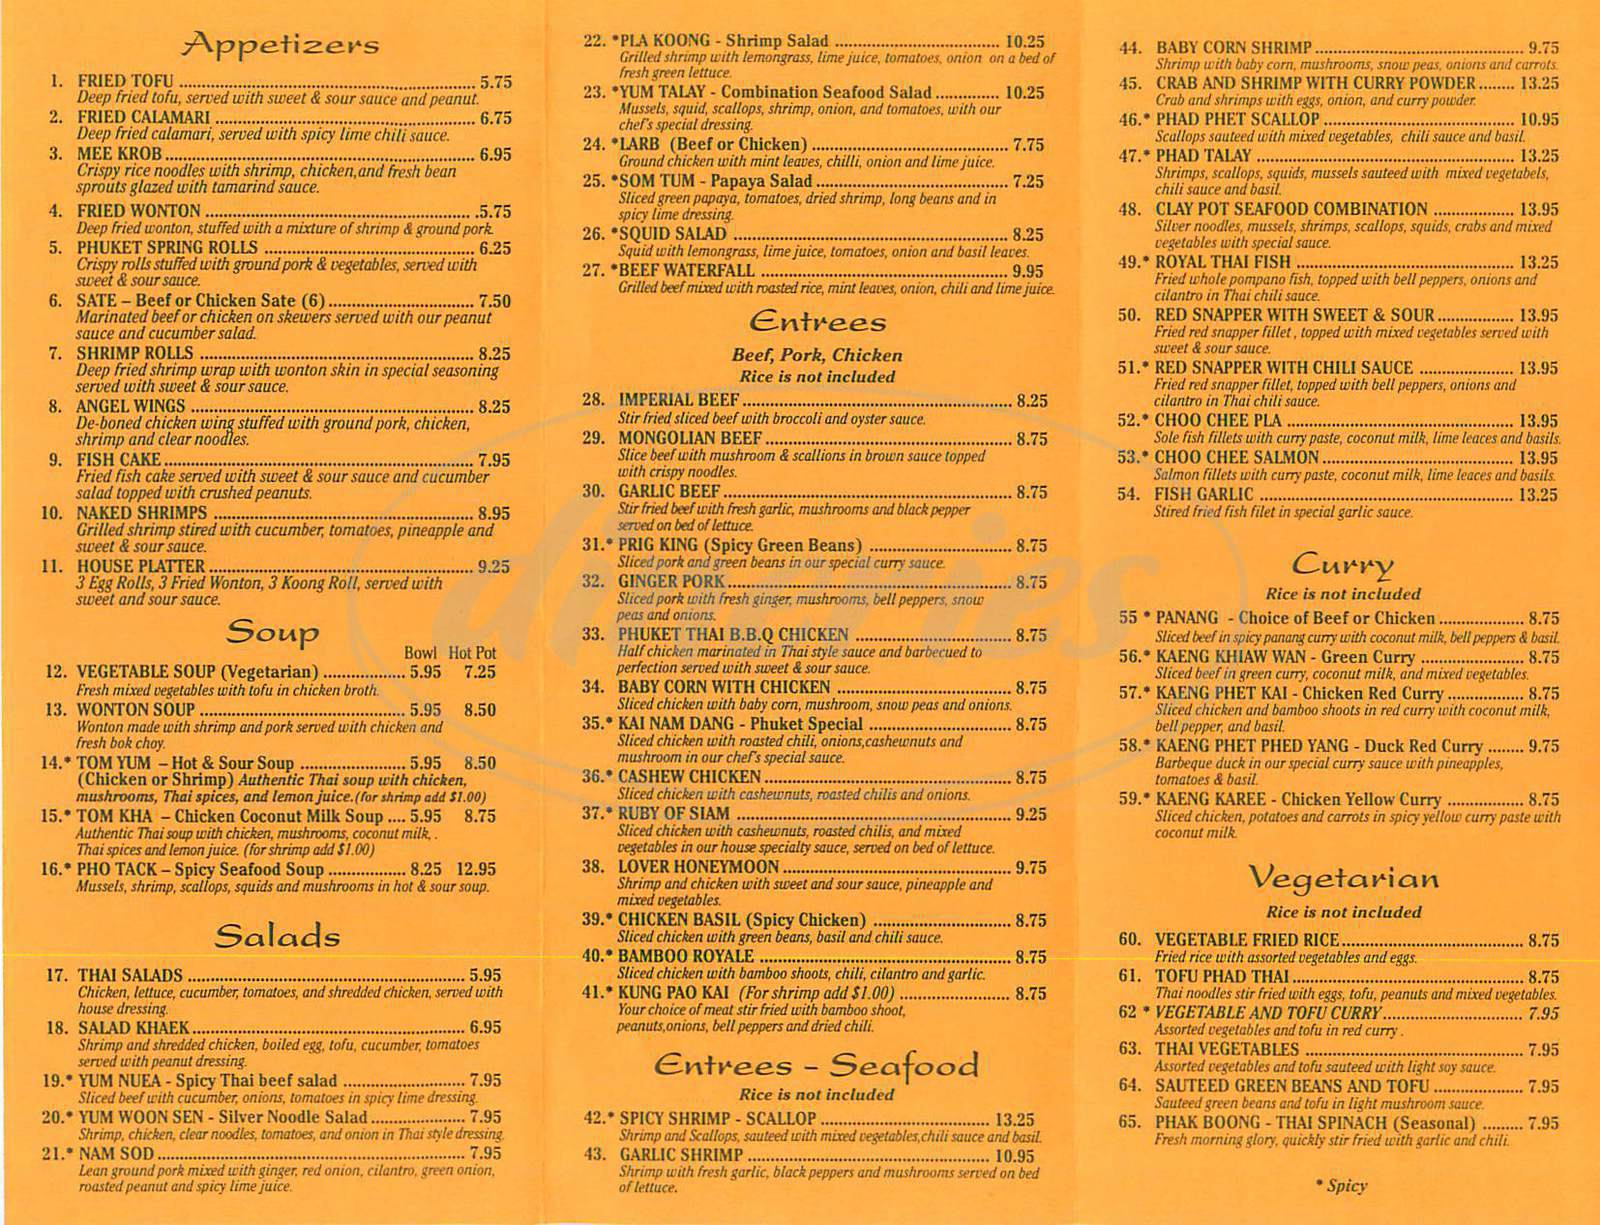 menu for Phuket Thai Restaurant